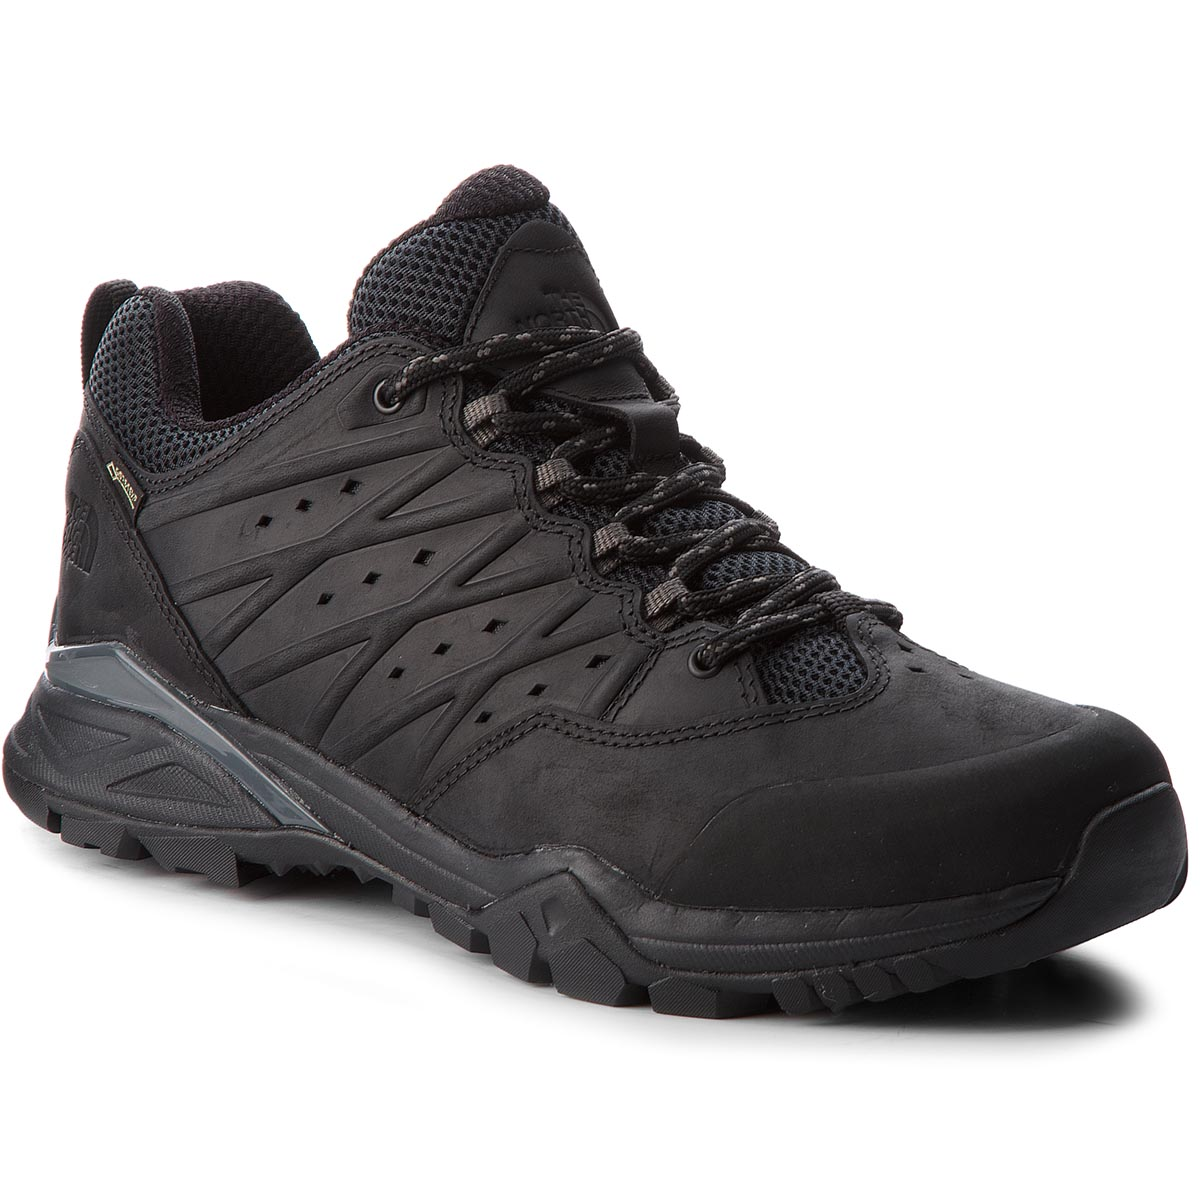 Trekkings THE NORTH FACE - Hedgehog Hike II Gtx GORE-TEX T939HZKU6 Tnf Black/Graphite Grey